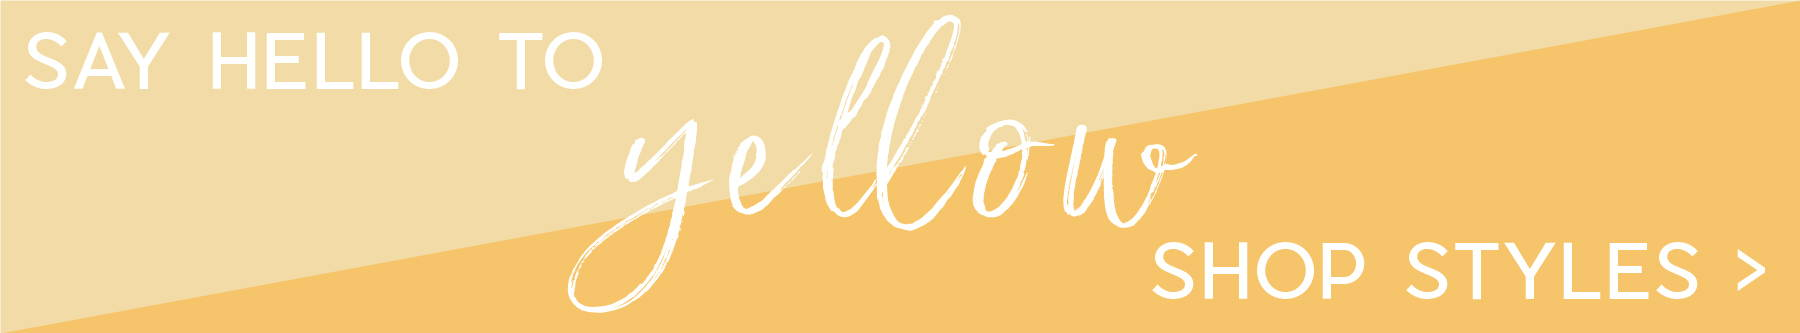 shop yellow spring styles from Bella ella boutique